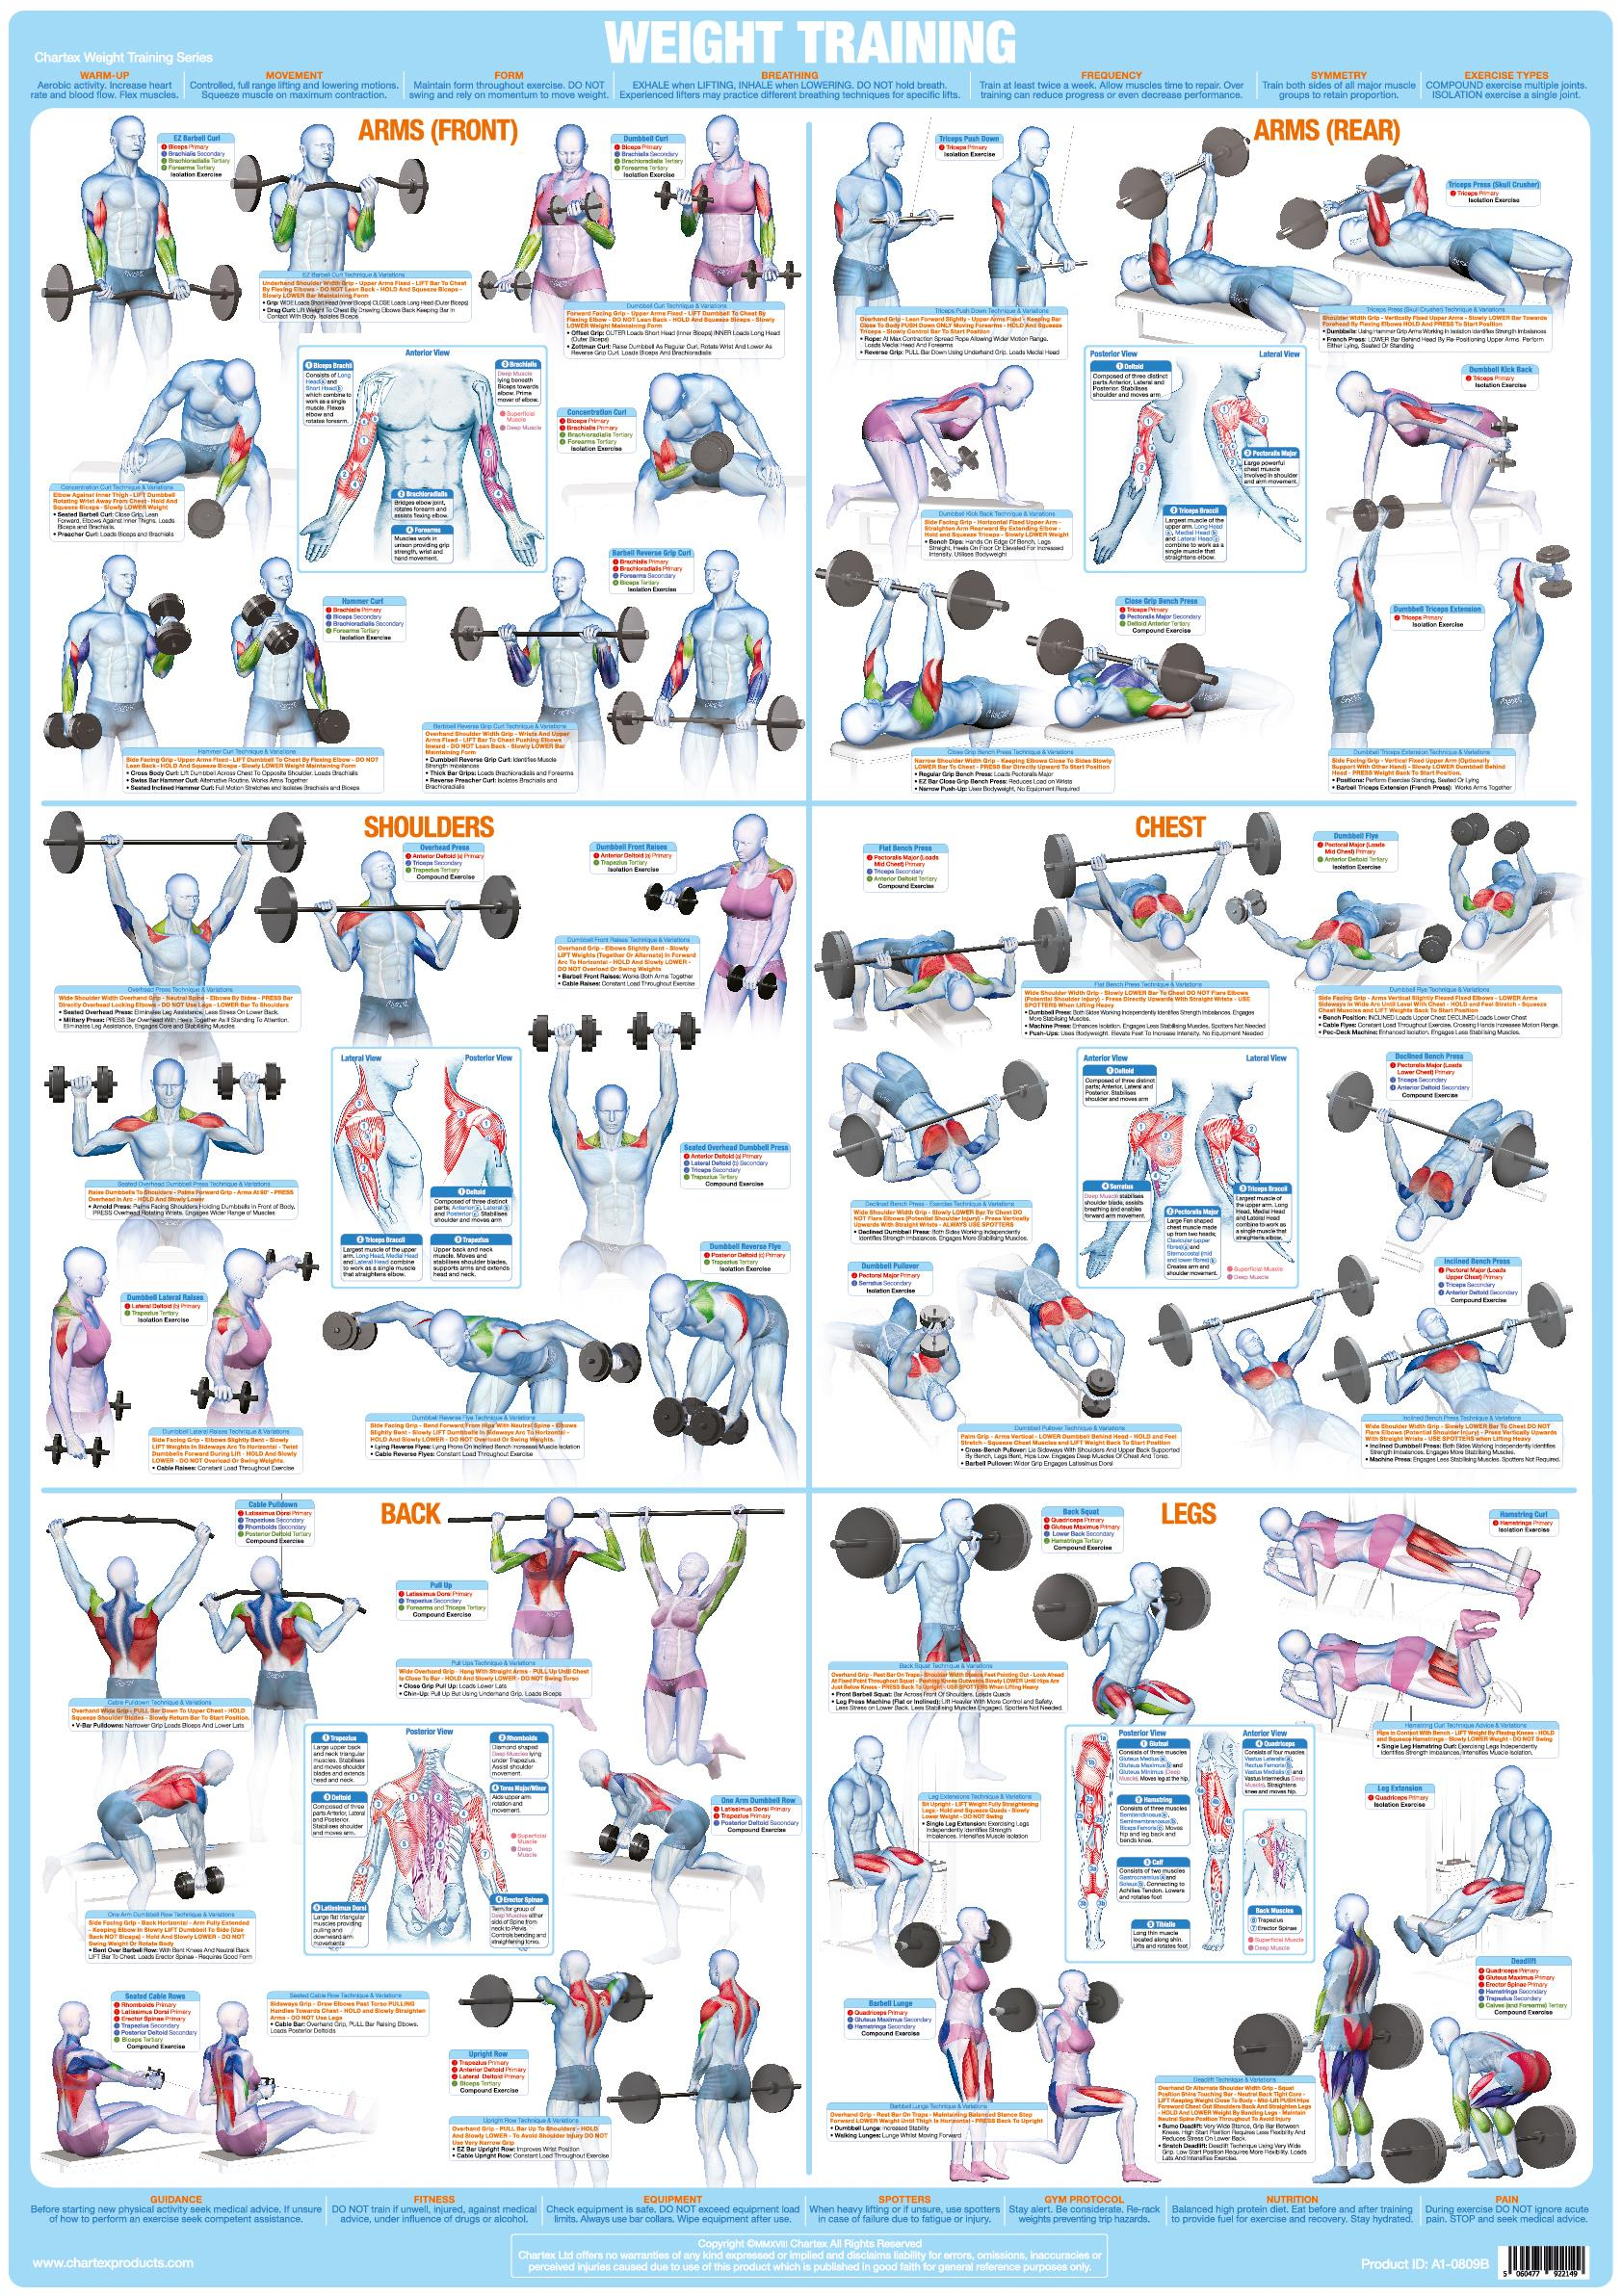 Bodybuilding Weight Training Poster